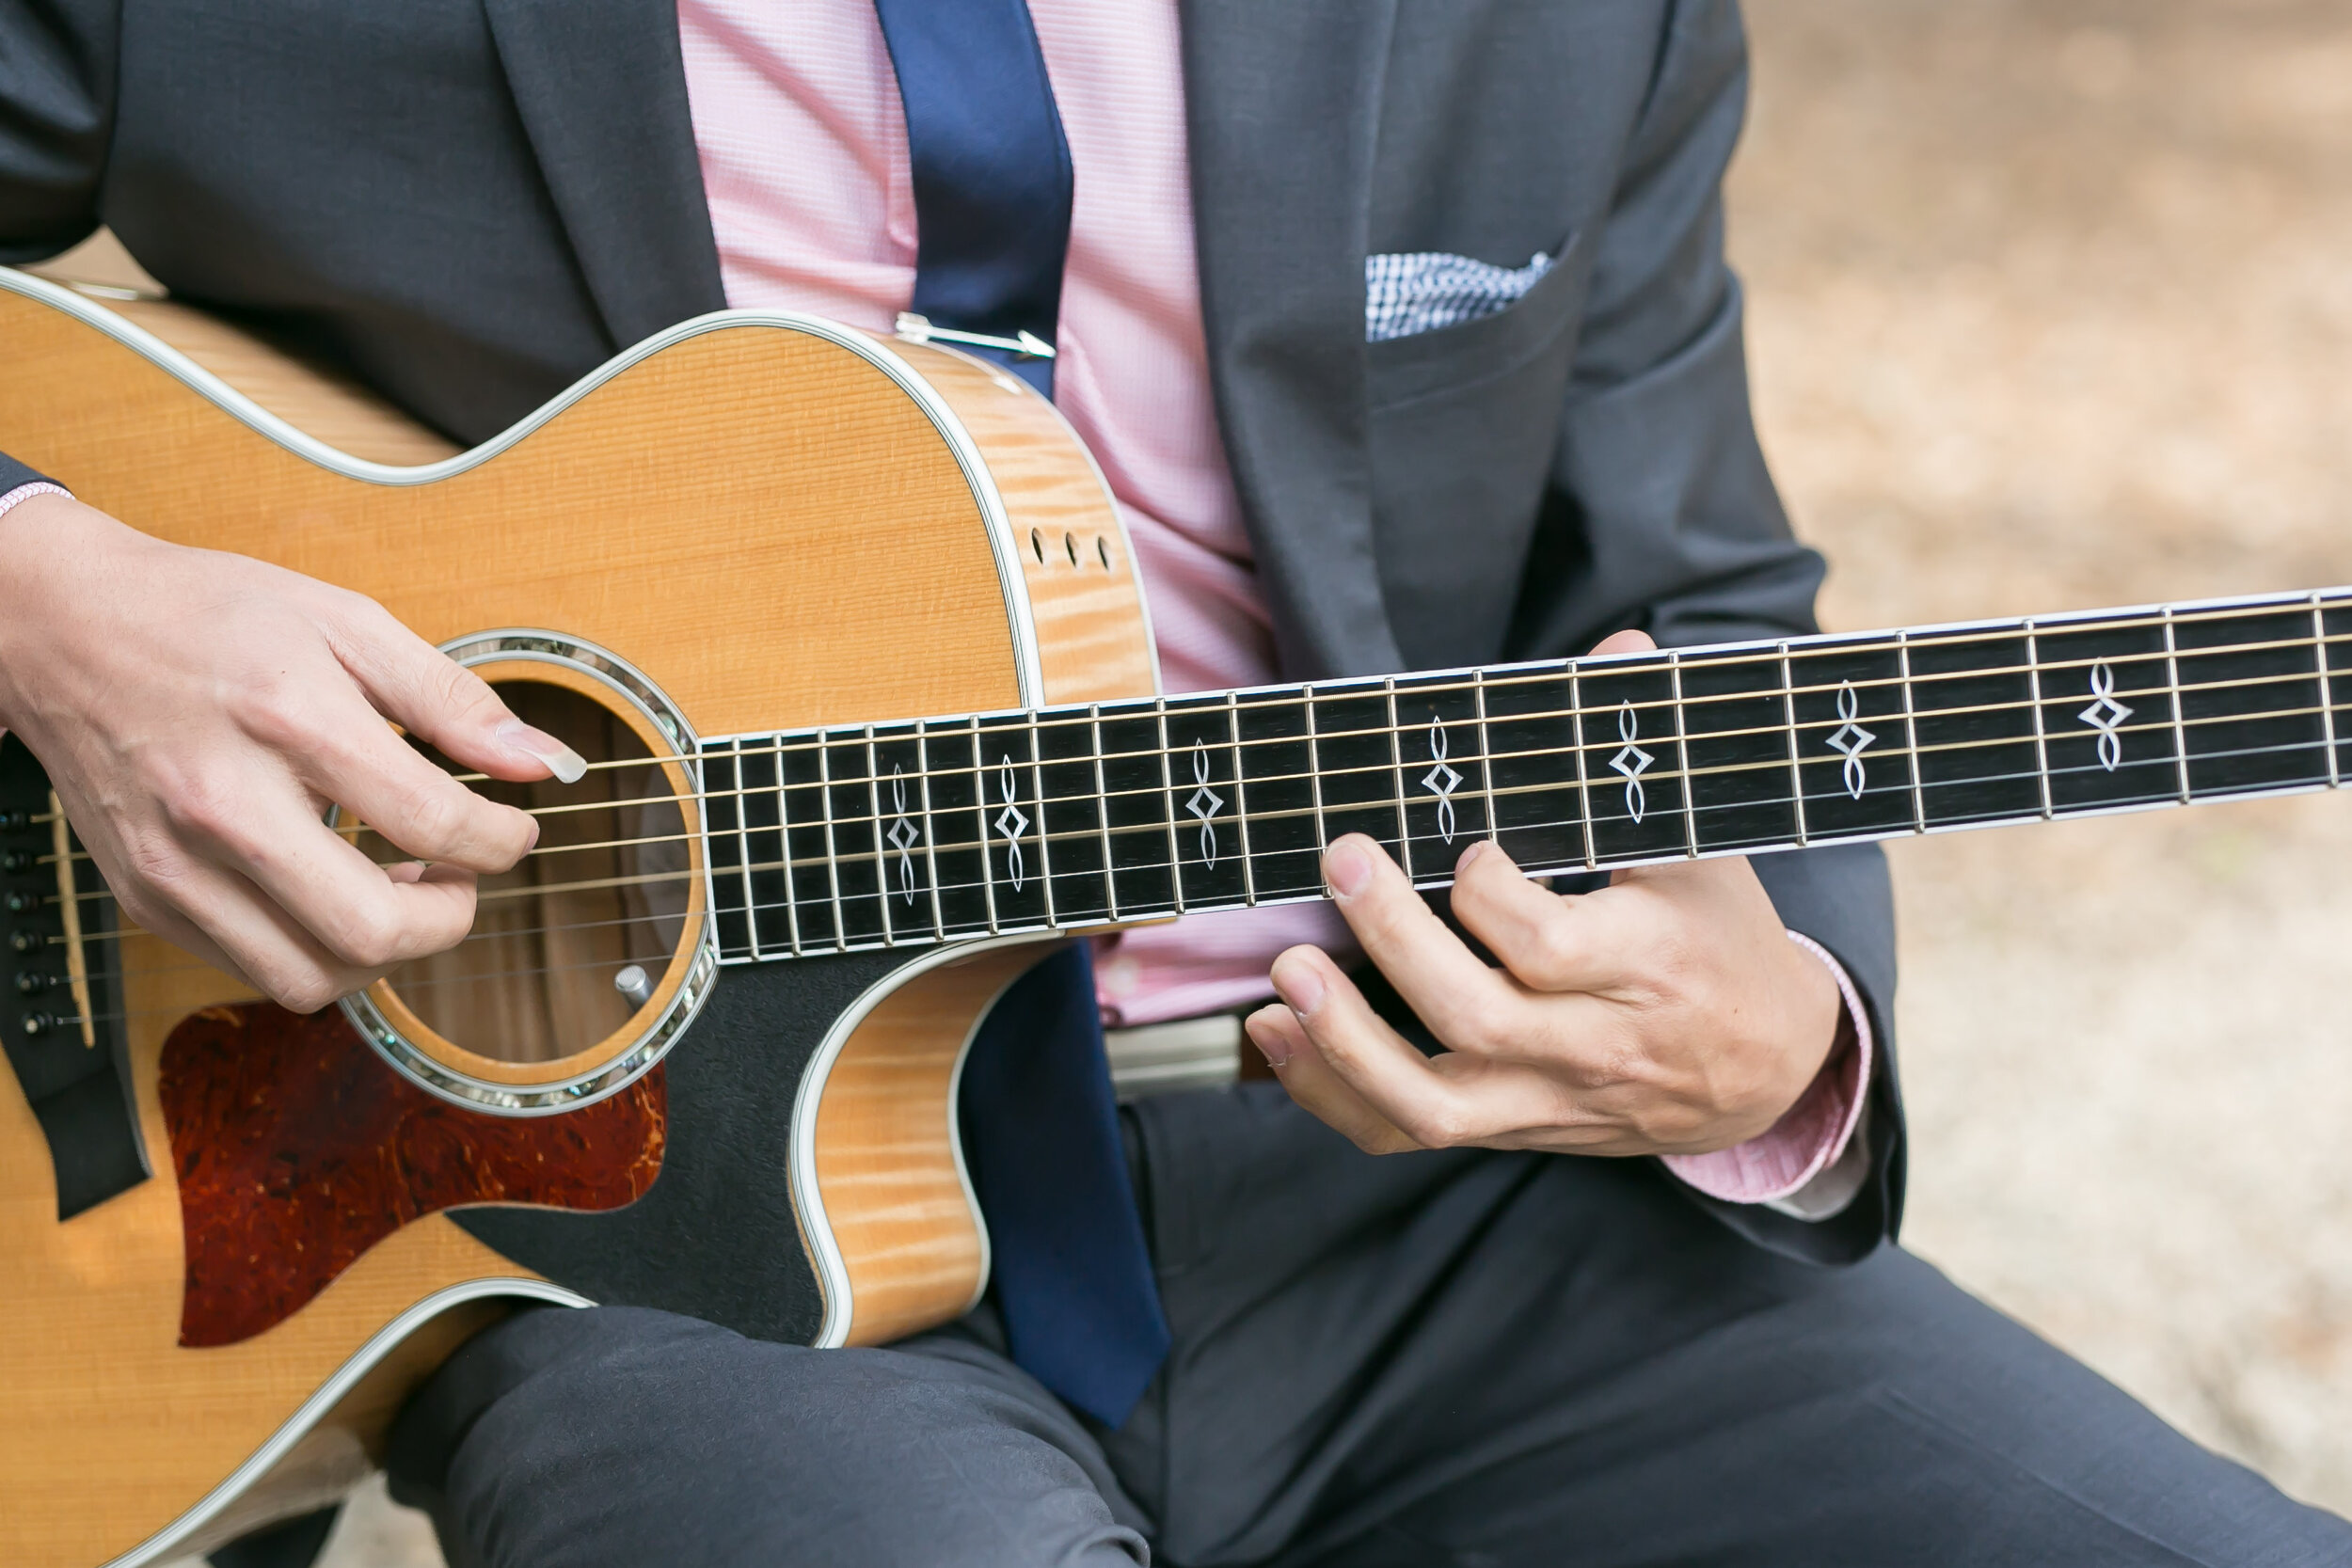 Corporate - Take your company party to the next level with an award-winning fingerstyle guitarist.